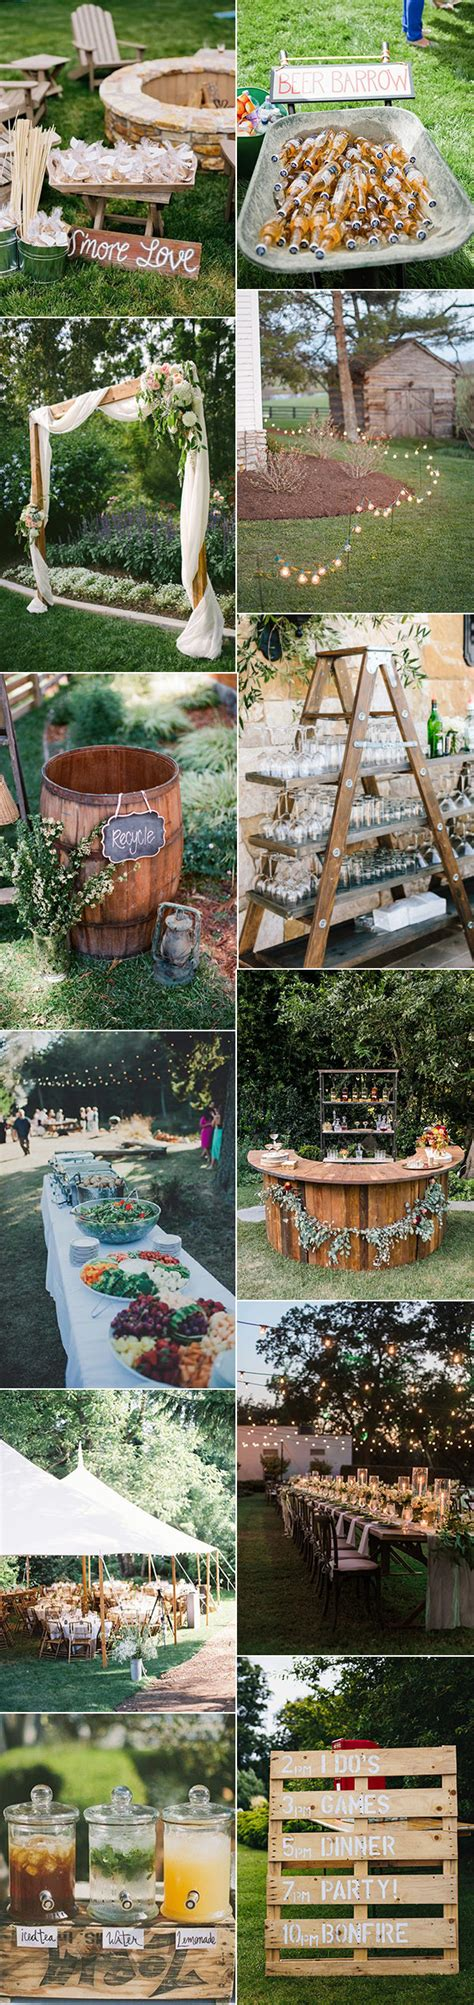 Backyard Country Wedding Ideas 20 Great Backyard Wedding Ideas That Inspire Oh Best Day